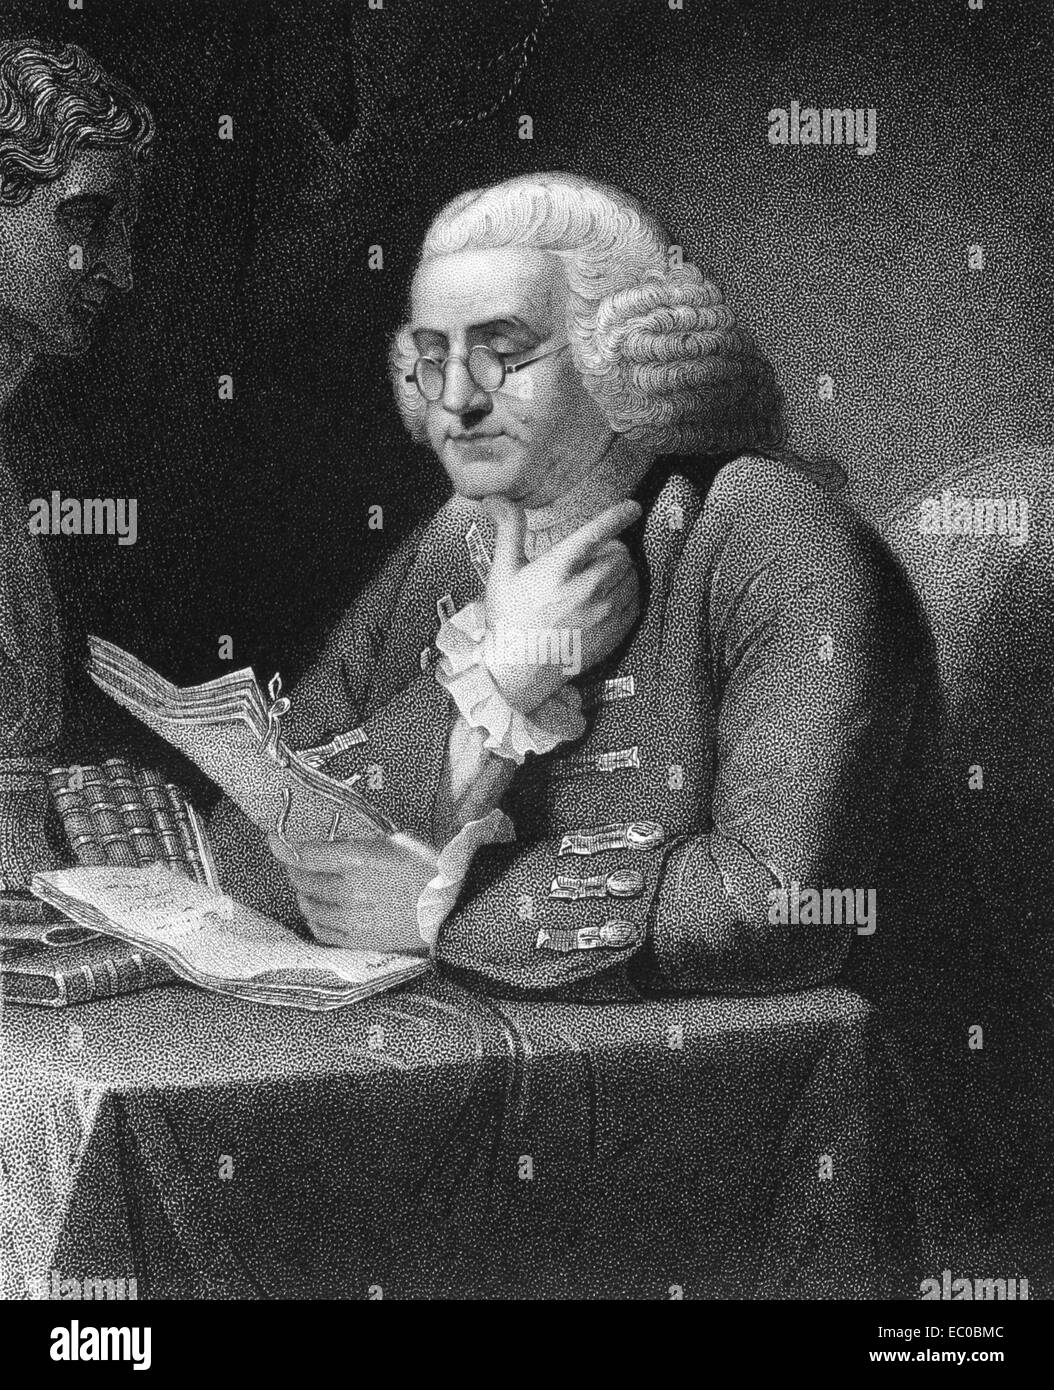 Benjamin Franklin On Engraving From One